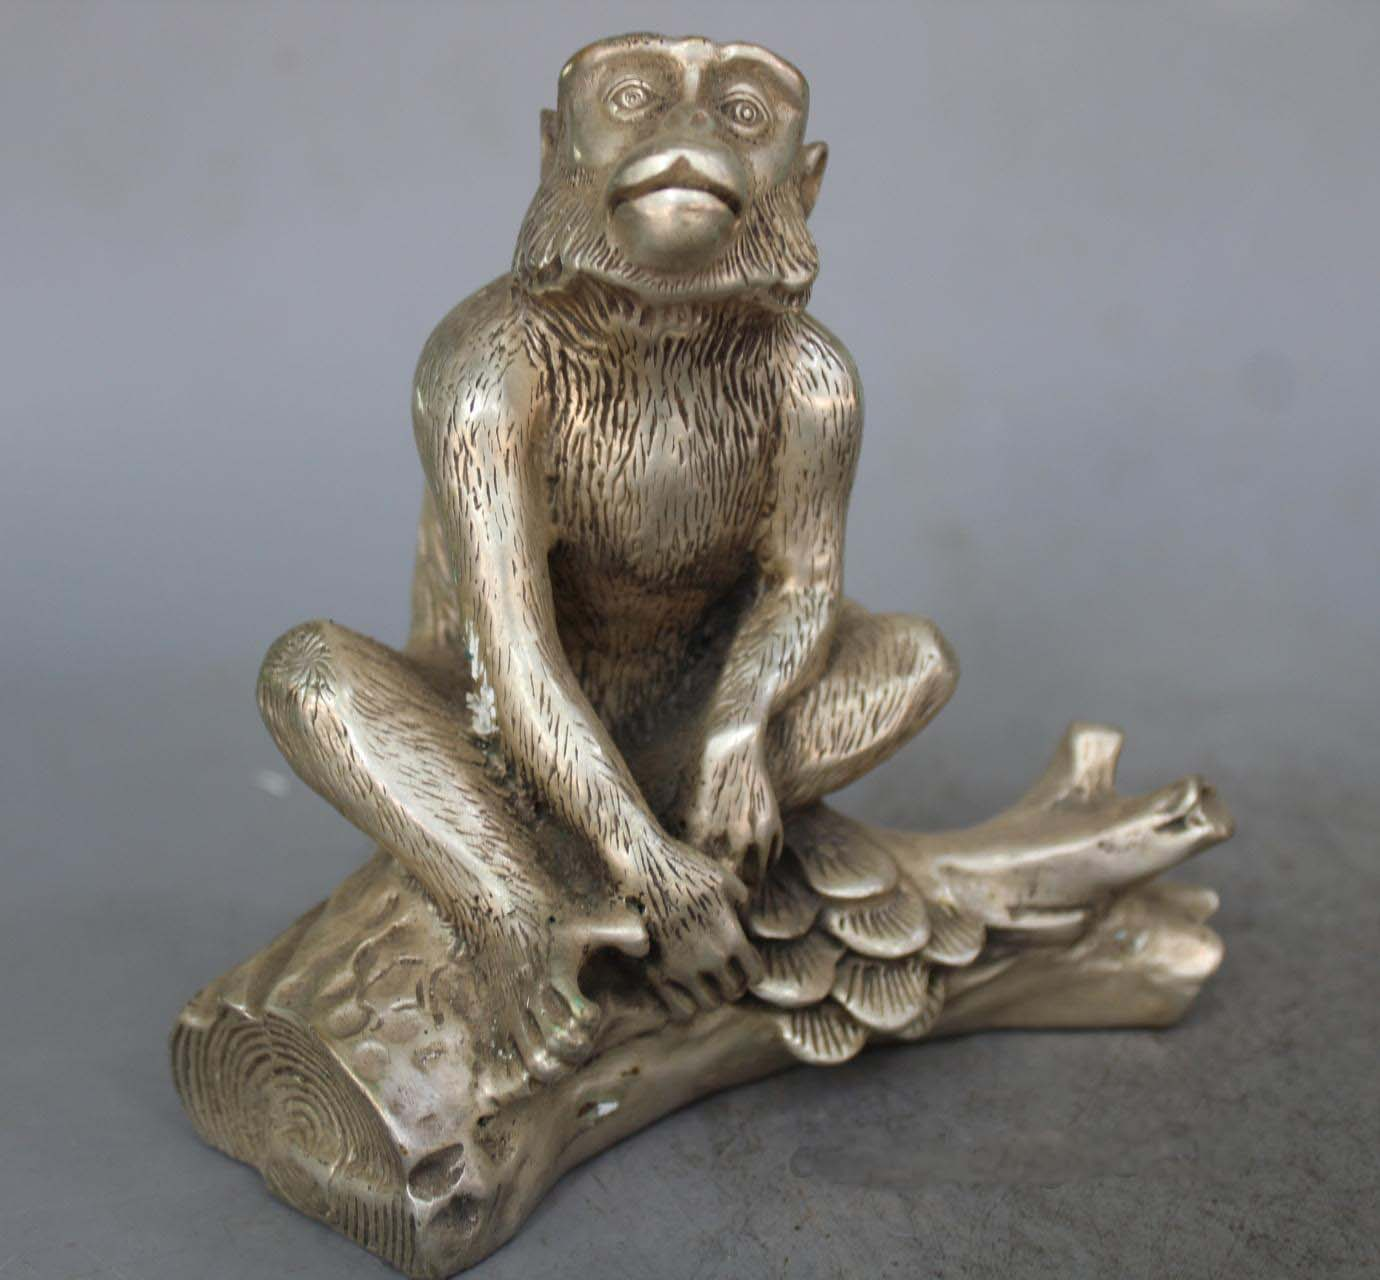 Chinese Fengshui Silver Gilt Monkey Seat Pine Tree StatueChinese Fengshui Silver Gilt Monkey Seat Pine Tree Statue